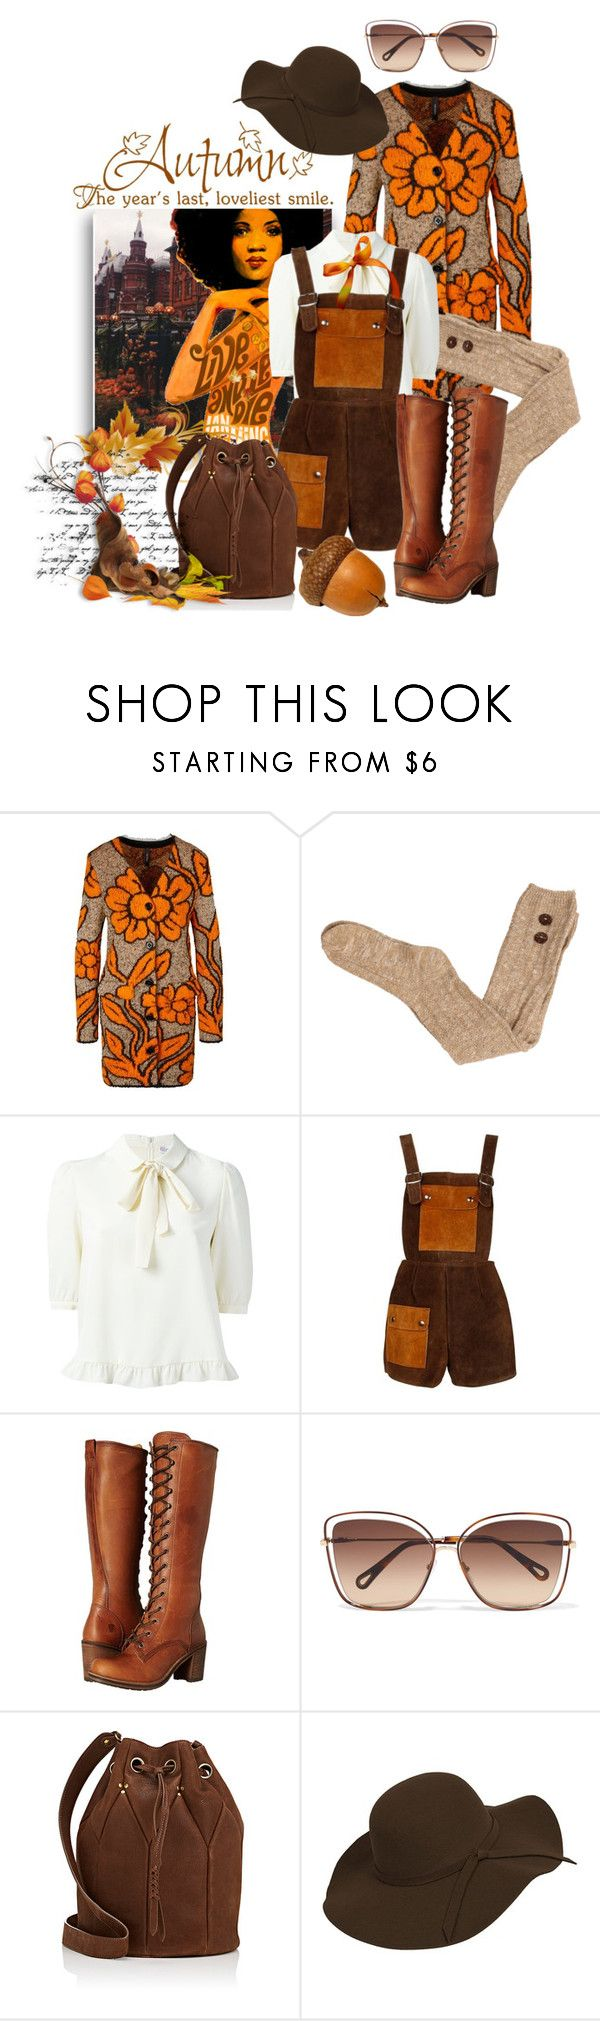 """""""Autumn Romper"""" by lisasotrue ❤ liked on Polyvore featuring MARC CAIN, James Bond 007, Frye, Chloé and Jérôme Dreyfuss"""